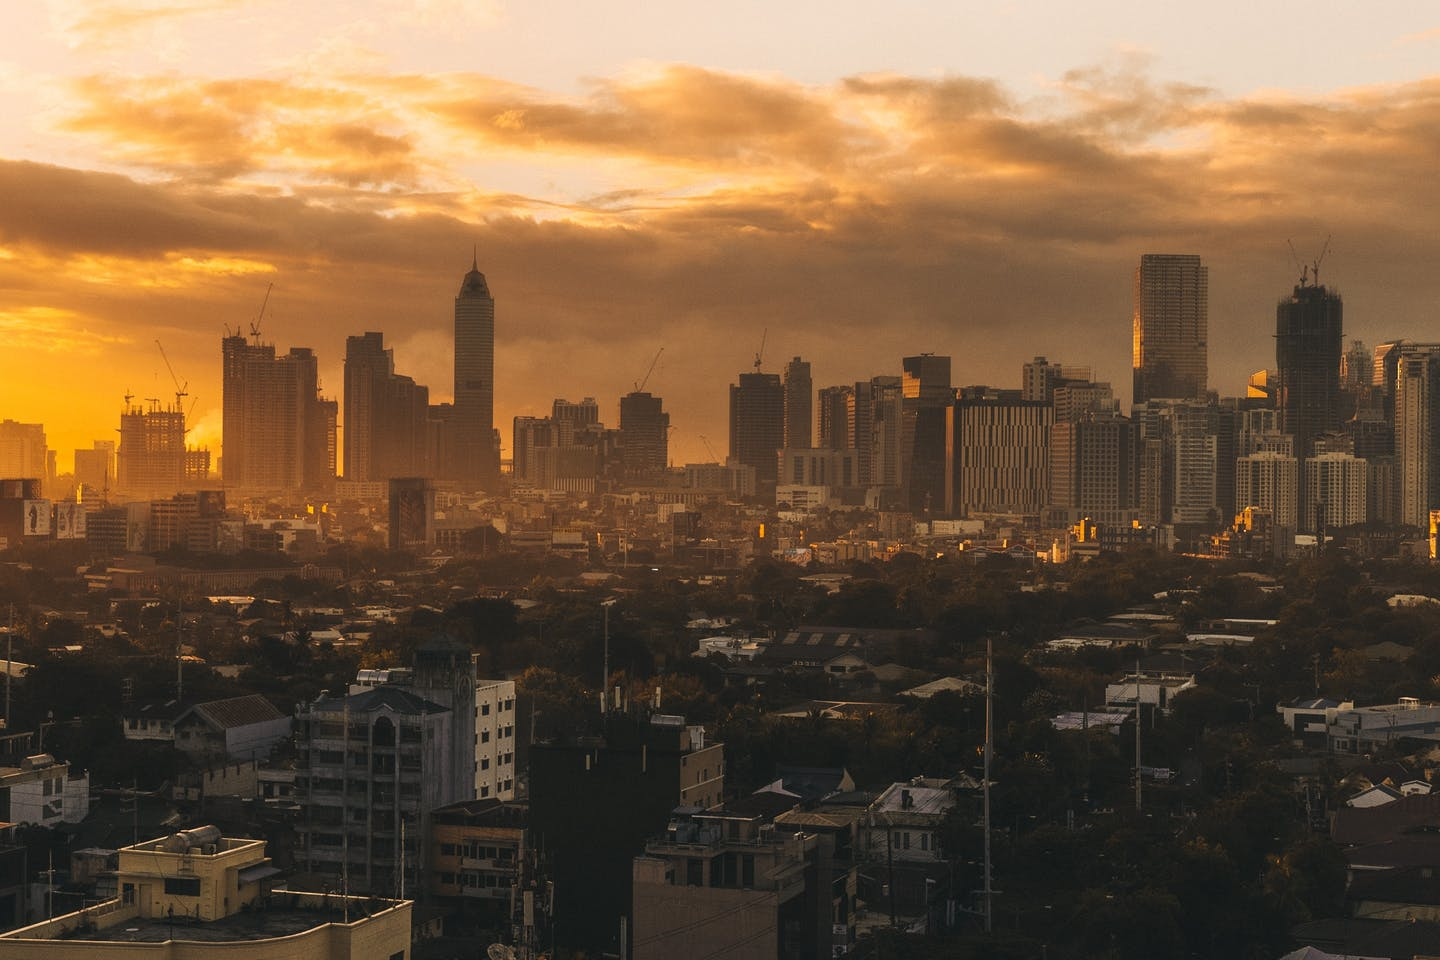 Manila skyline on Unsplash